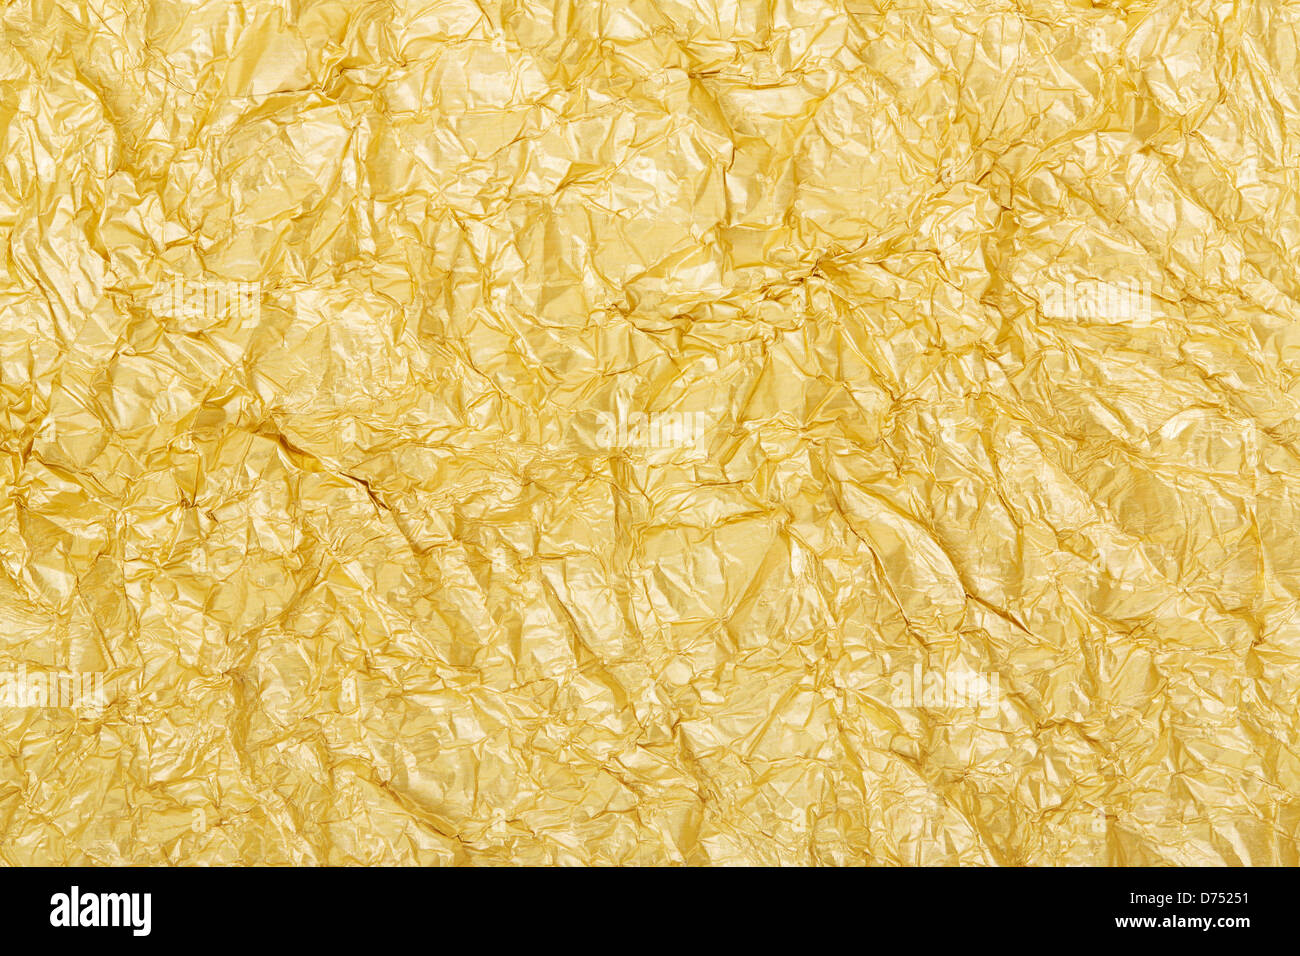 Gold foil background texture - Stock Image